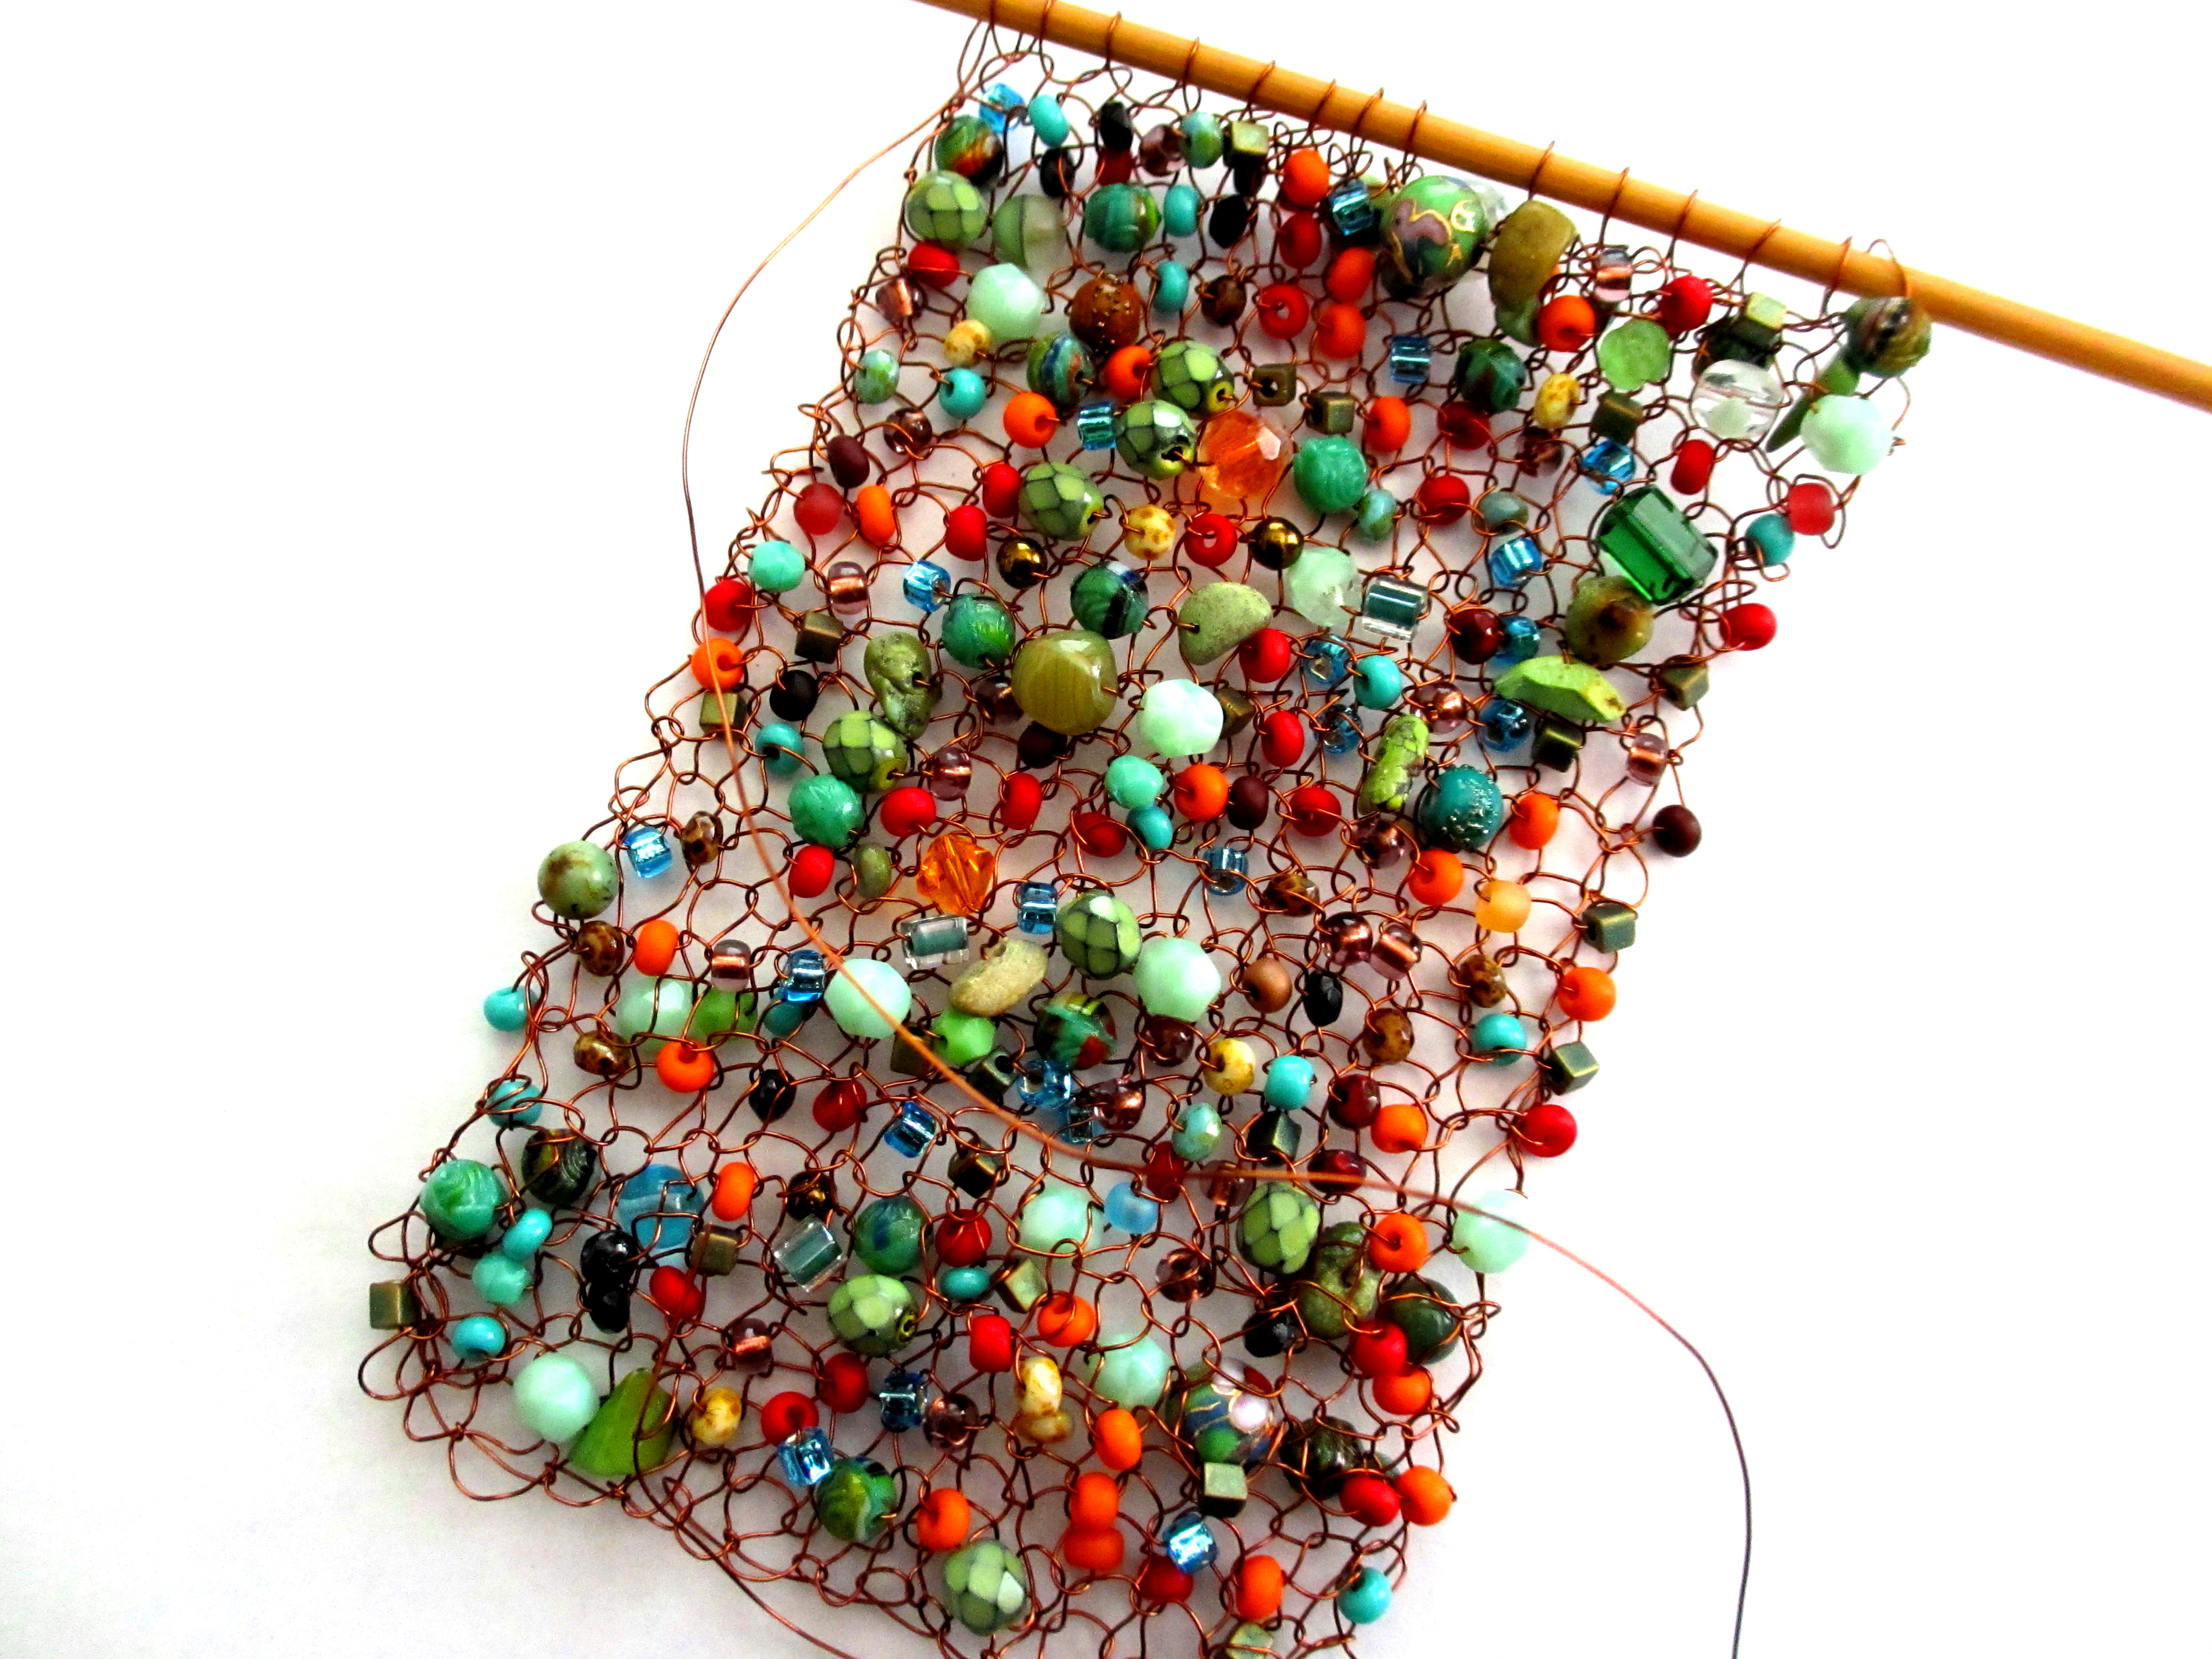 Knitting With Wire And Beads Patterns : Wire and beads sticks a gogo